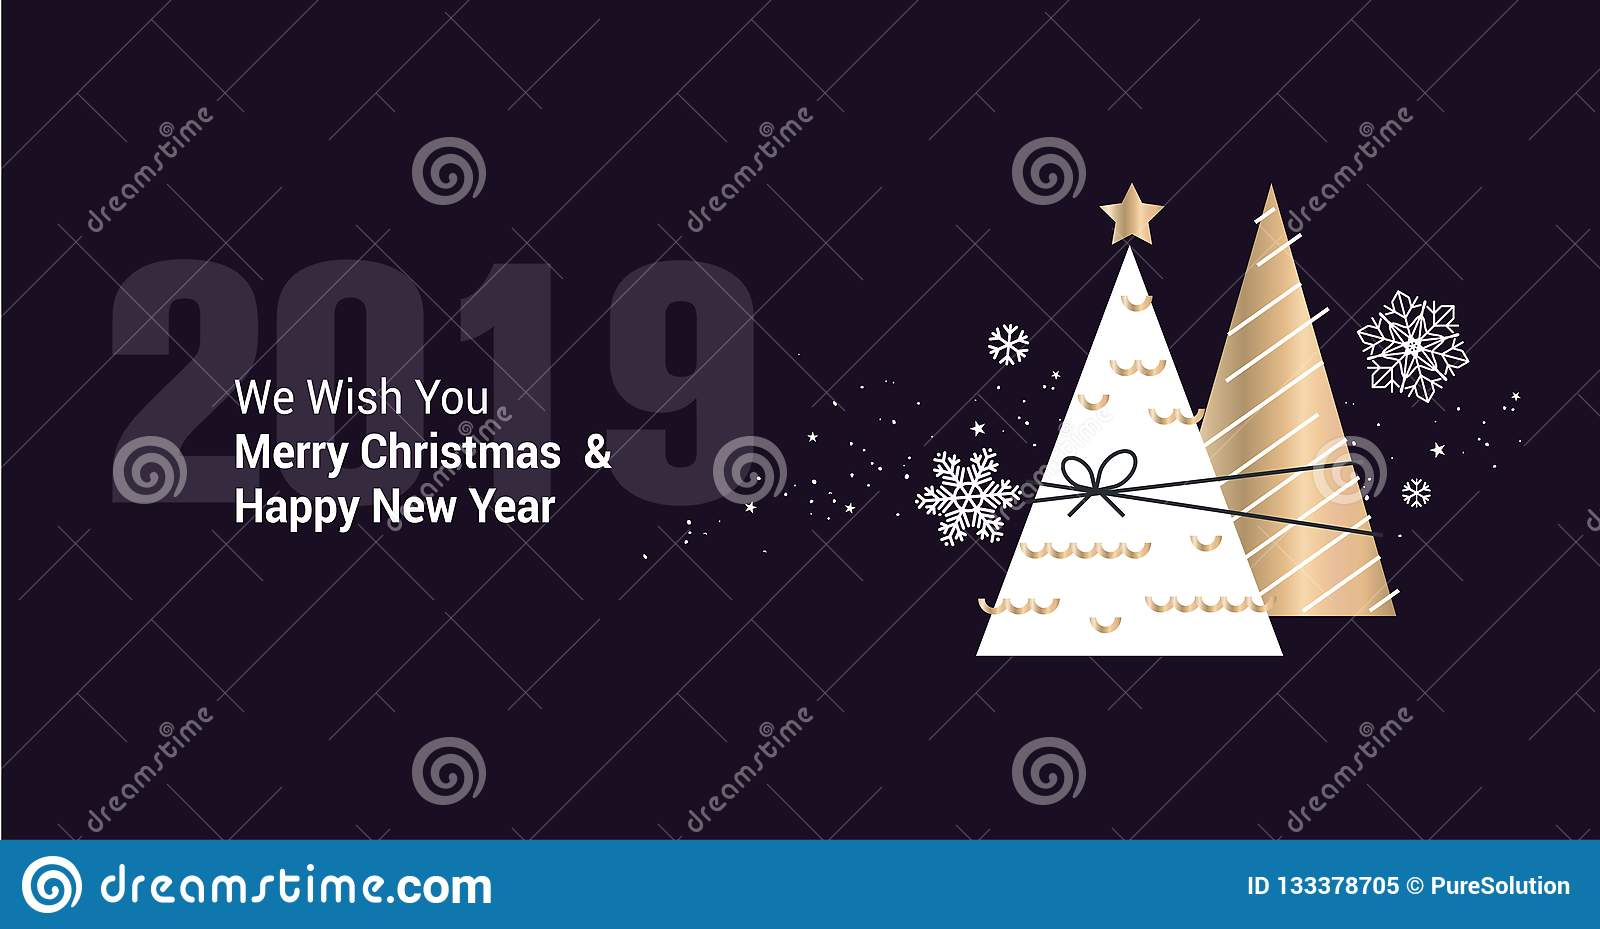 merry christmas and happy new year 2019 business greeting card stock